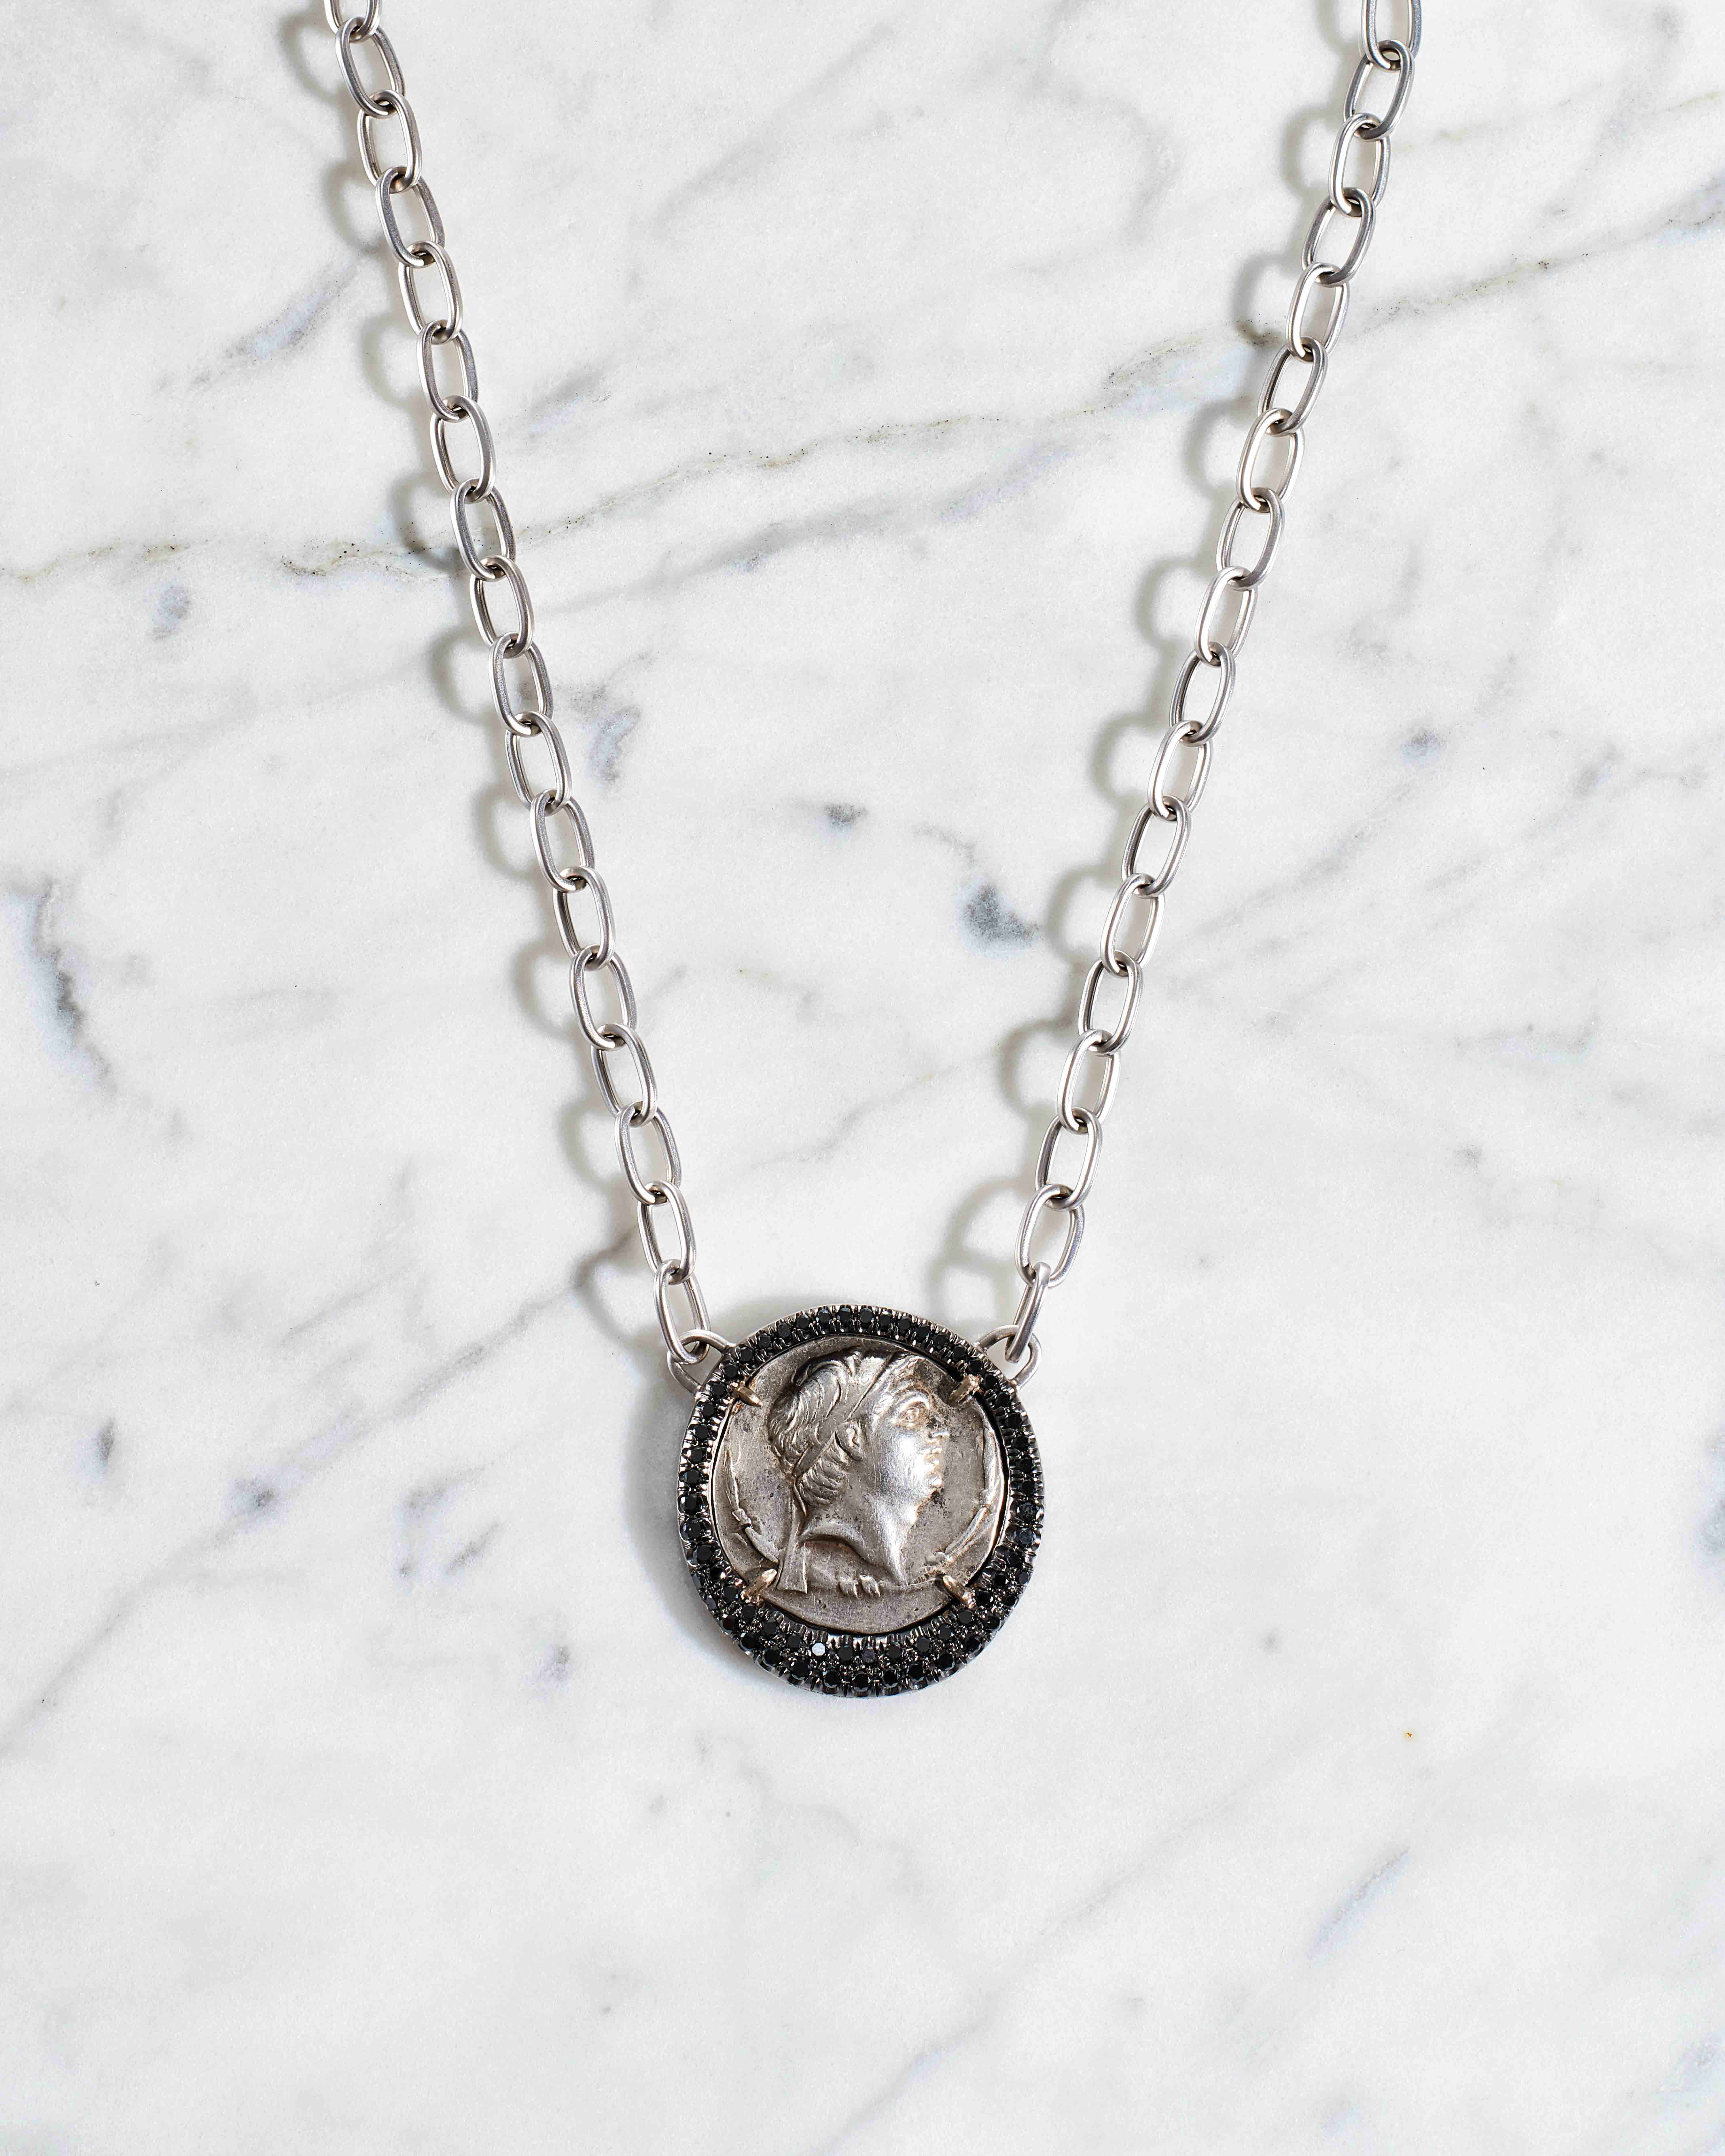 BLACK_GREEK_COIN_NECKLACE_001